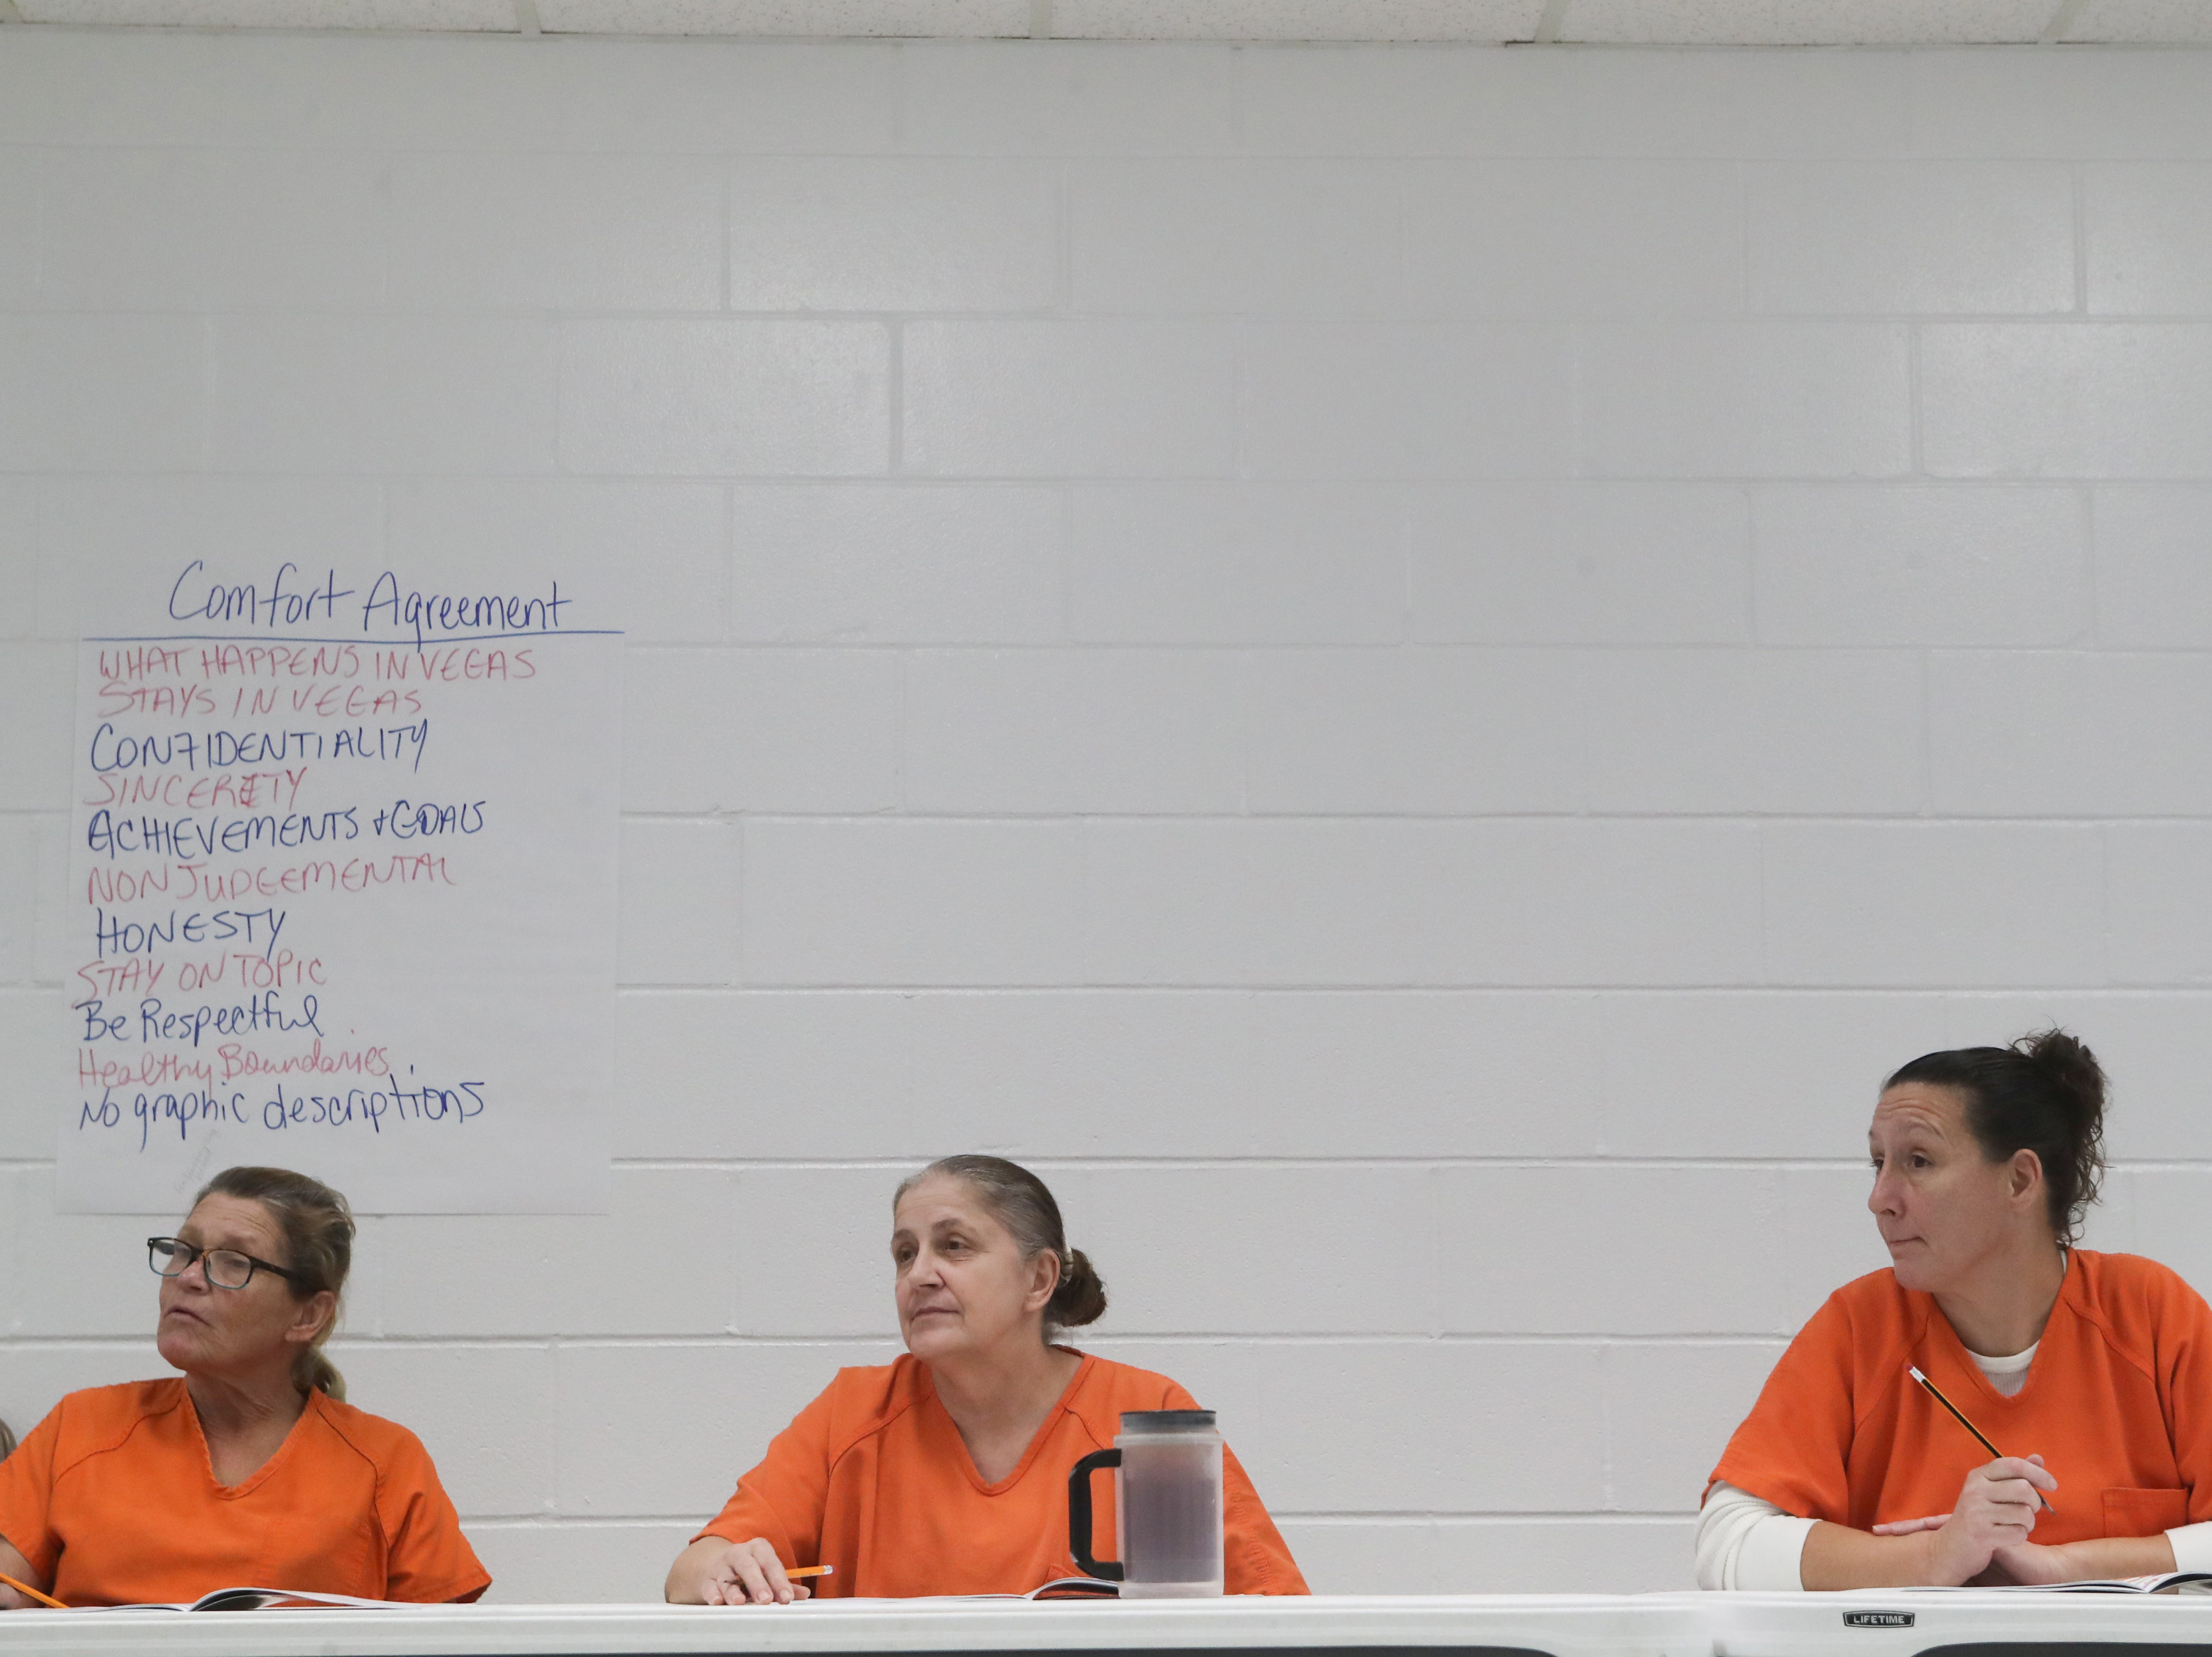 Donna Needer, Tina Davis and Tonya Seamon, inmates at the Franklin County Jail listen during a substance abuse counseling class by DISC Village at the jail in Eastpoint, Fla. Thursday, Oct. 27, 2018.